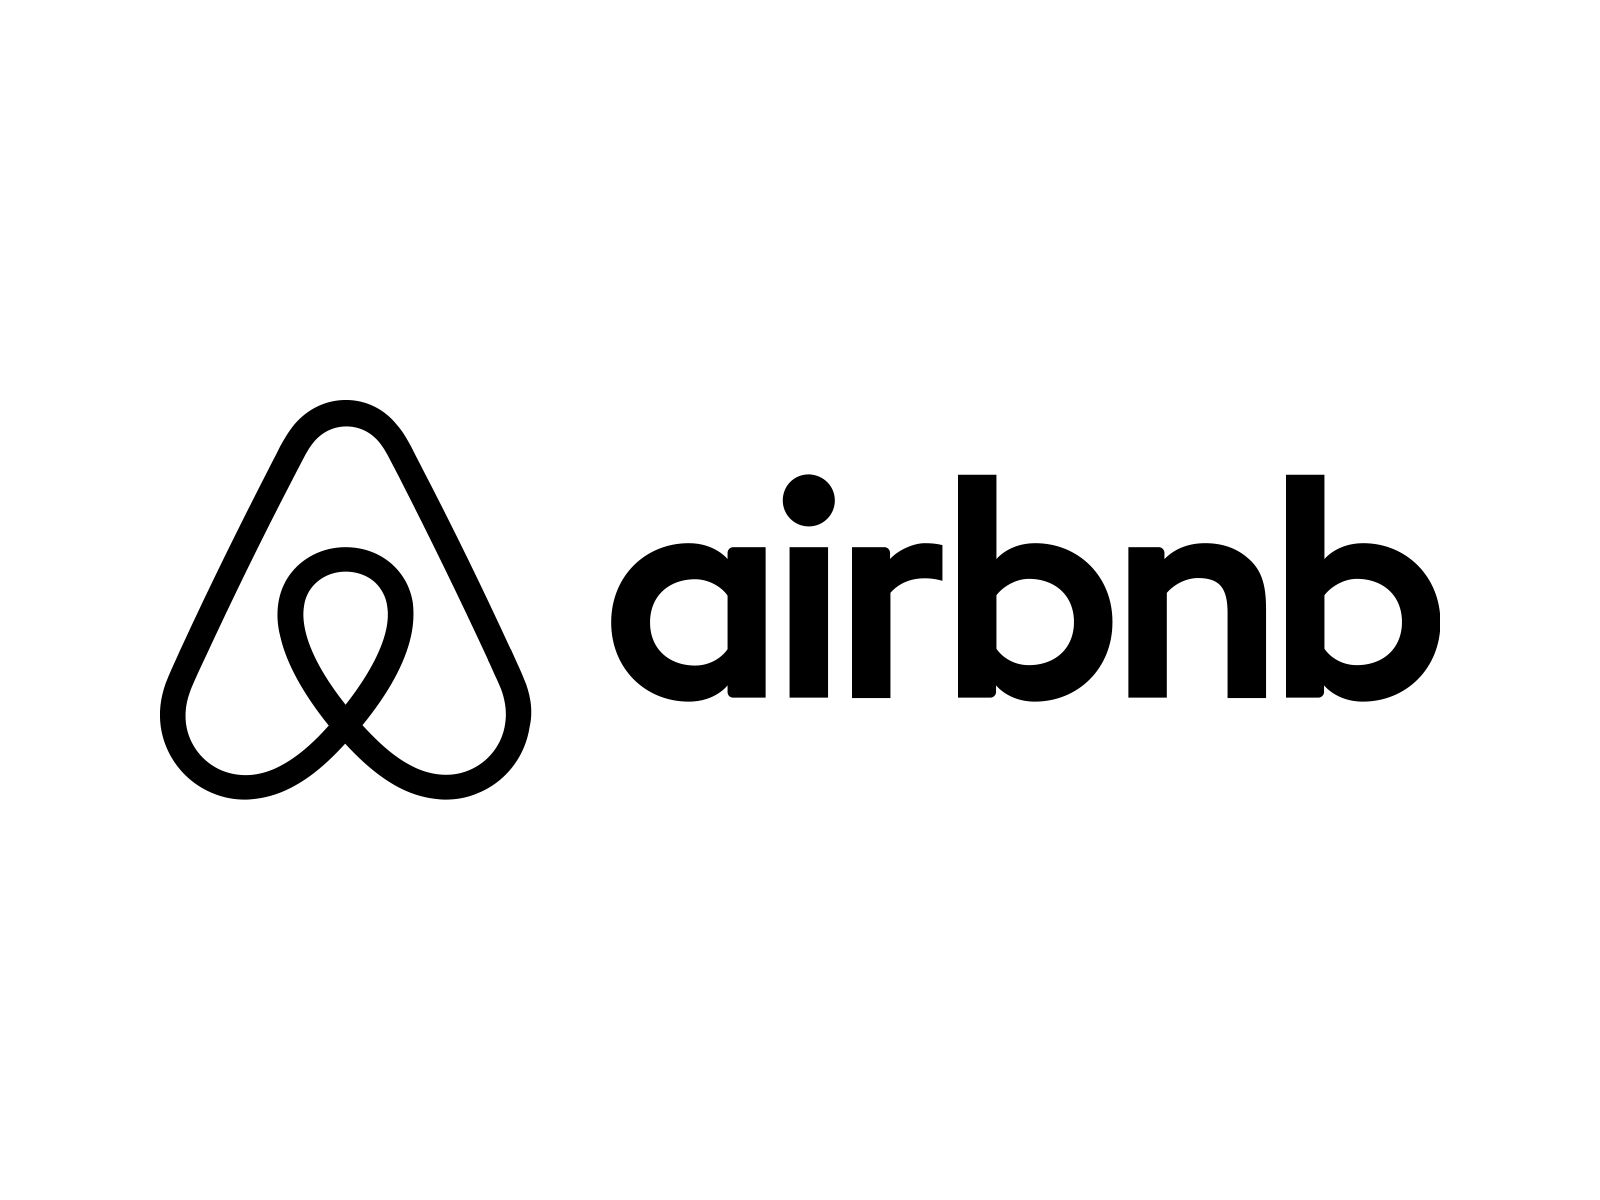 Airbnb Logo - Airbnb Logo PNG Transparent & SVG Vector - Freebie Supply